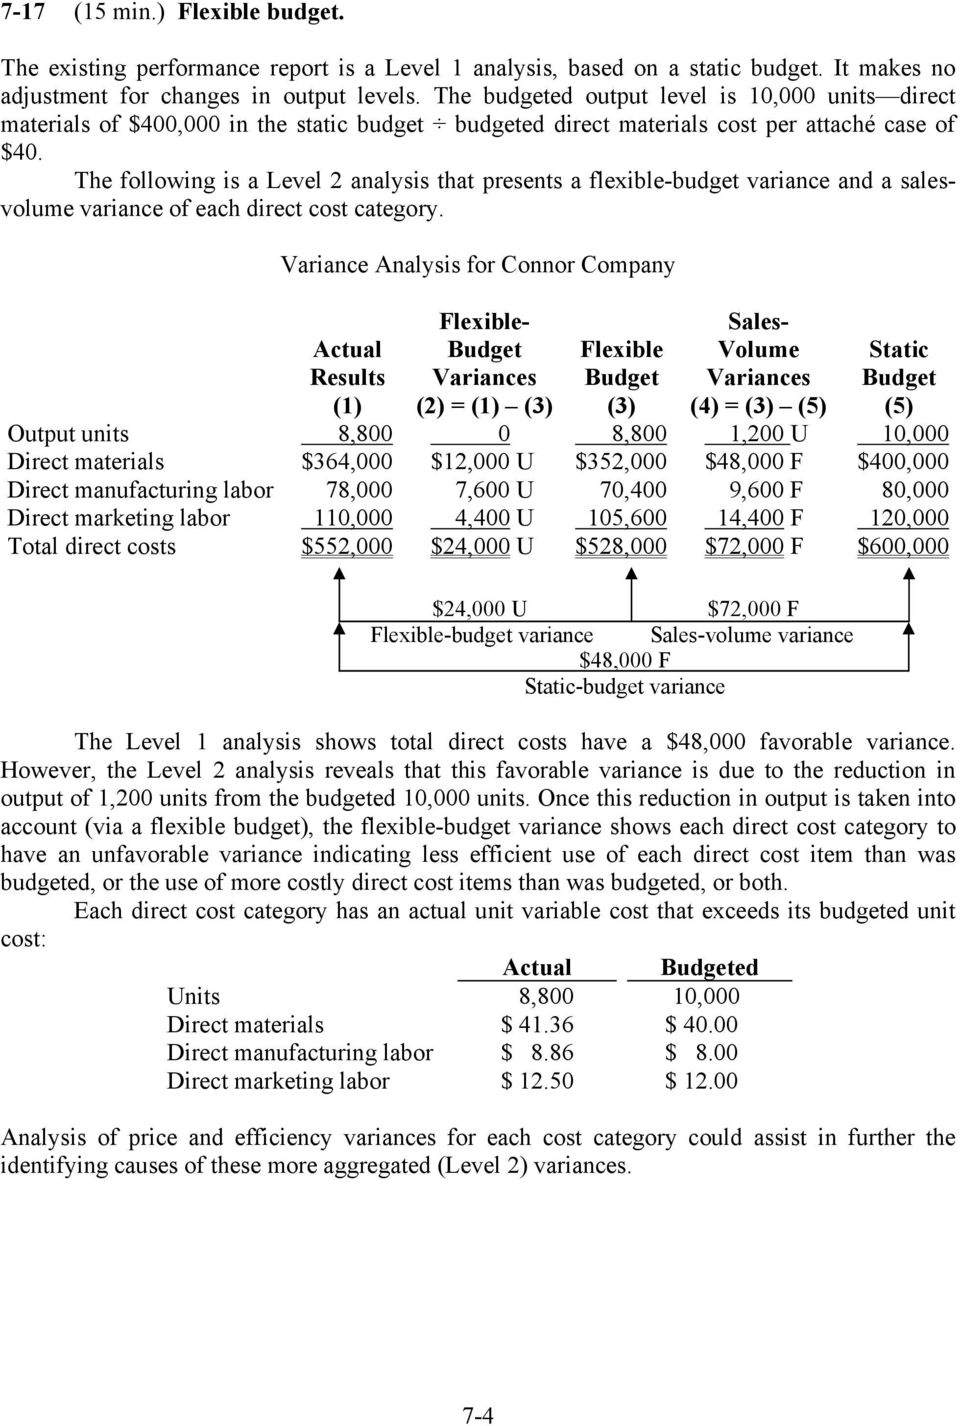 CHAPTER 7 FLEXIBLE BUDGETS, DIRECT-COST VARIANCES, AND MANAGEMENT